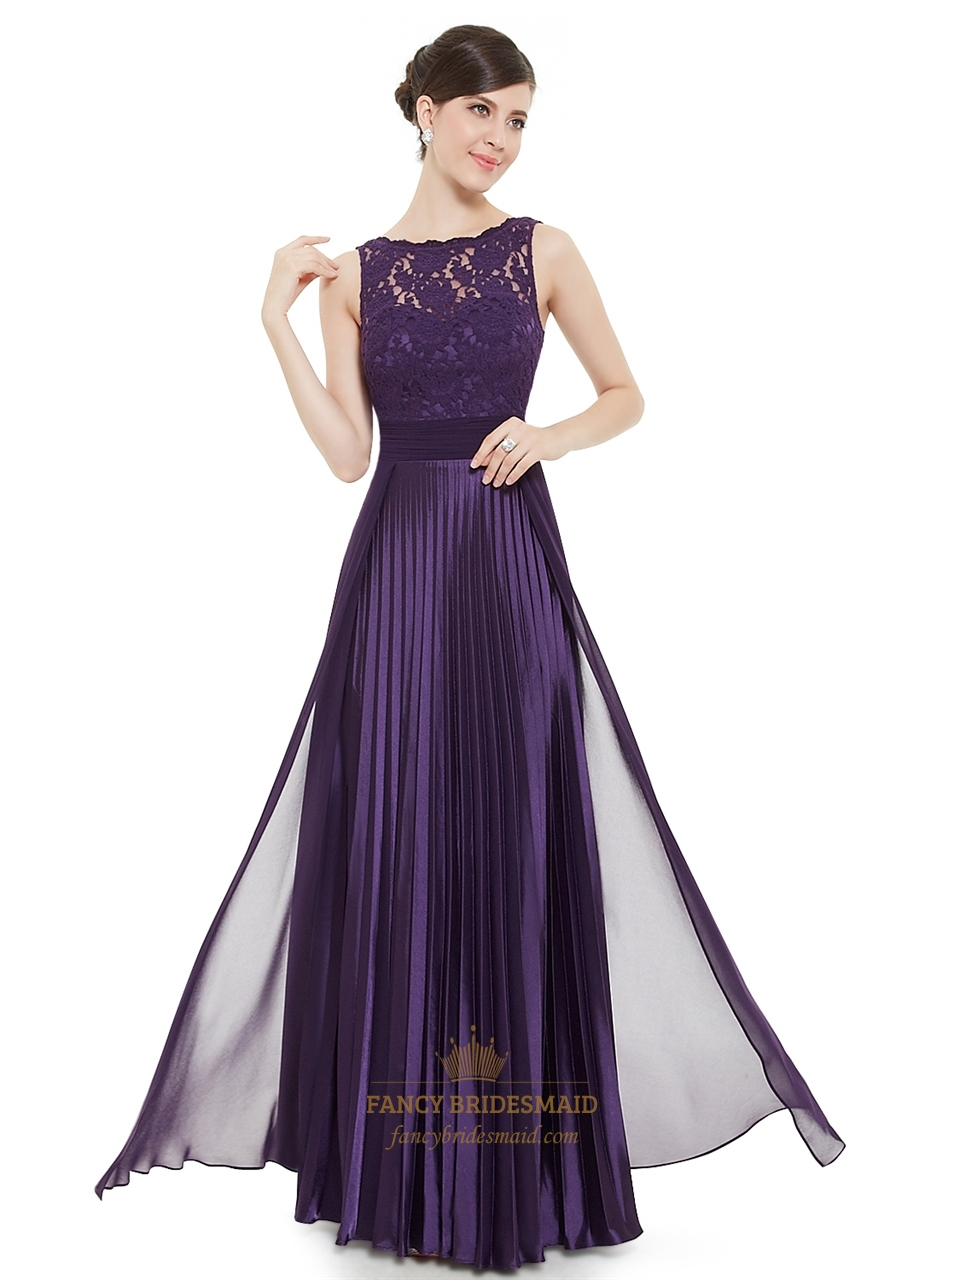 Elegant purple lace illusion neckline chiffon long bridesmaid elegant purple lace illusion neckline chiffon long bridesmaid dress ombrellifo Gallery